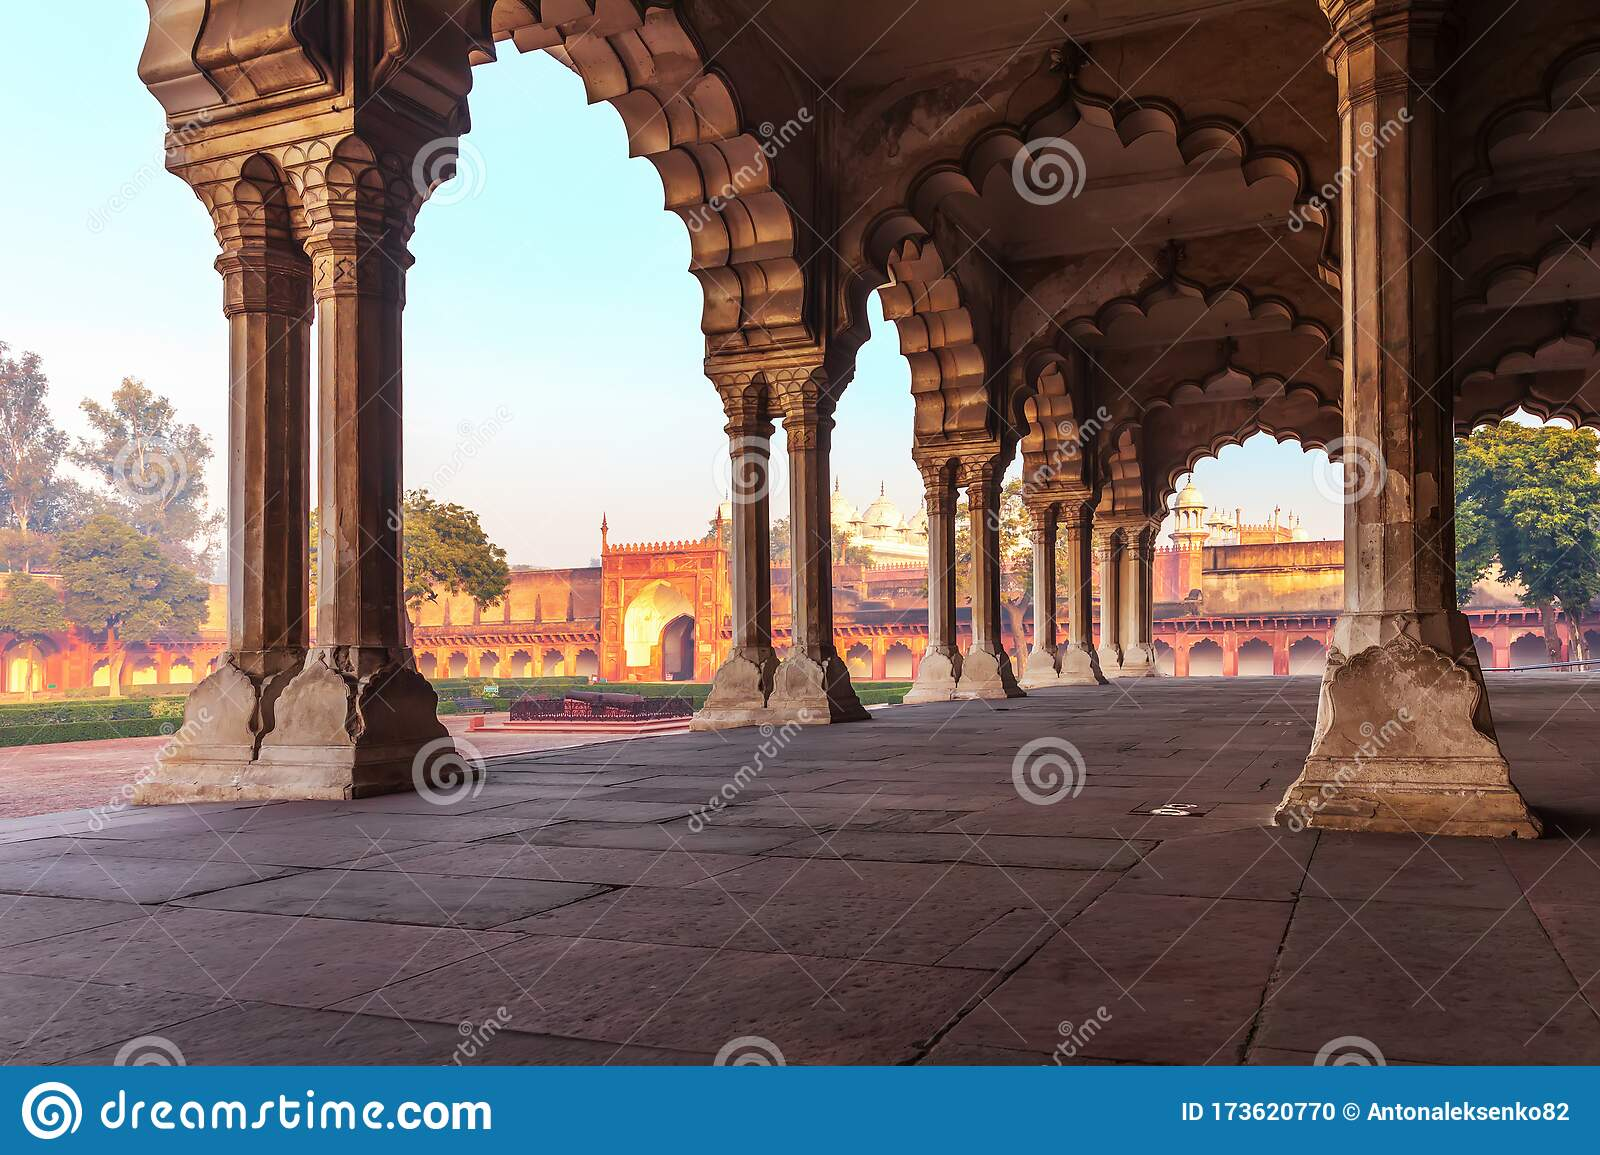 Picture/Photo: Arches in Diwan-i-Am, Red Fort. New Delhi